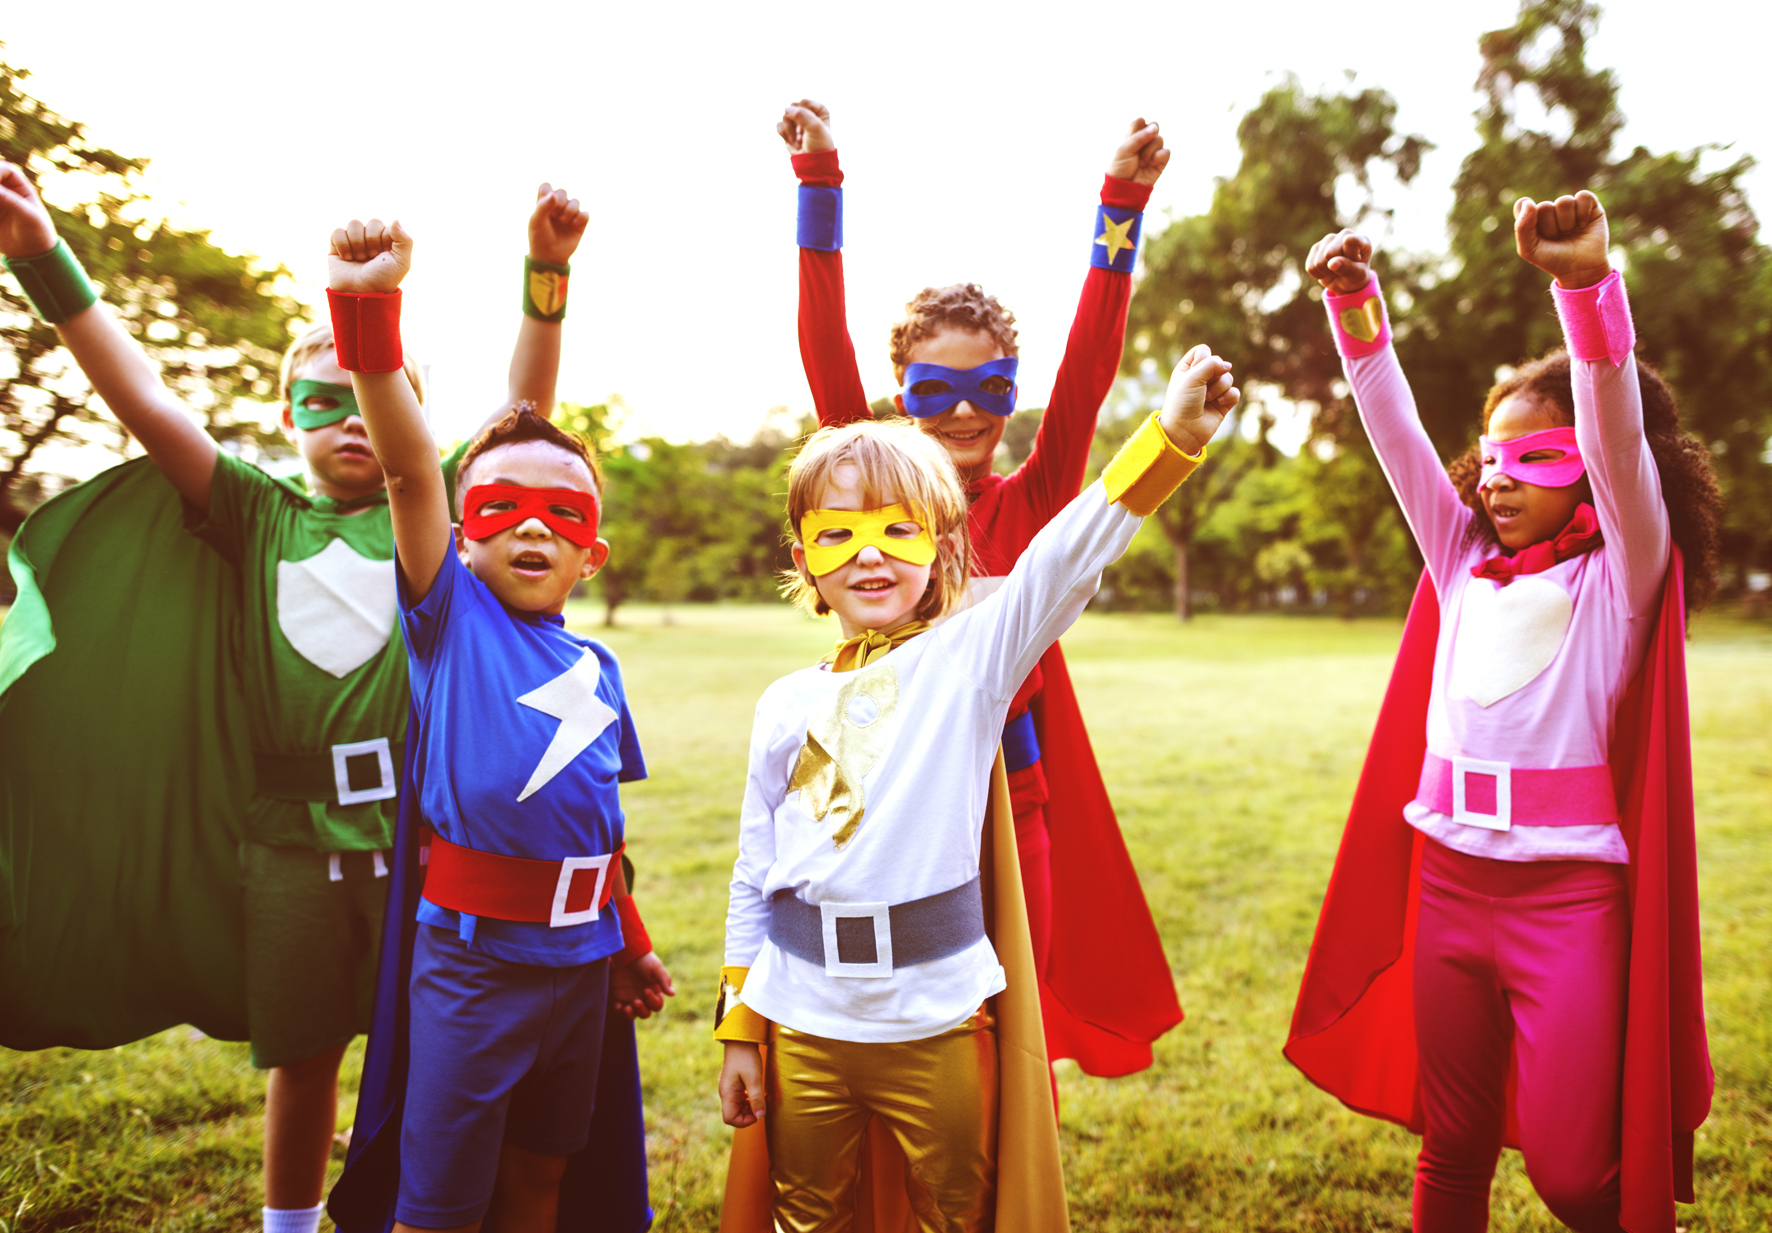 Superheroes of all sizes can enjoy a week of fun activities at Scolton Manor.